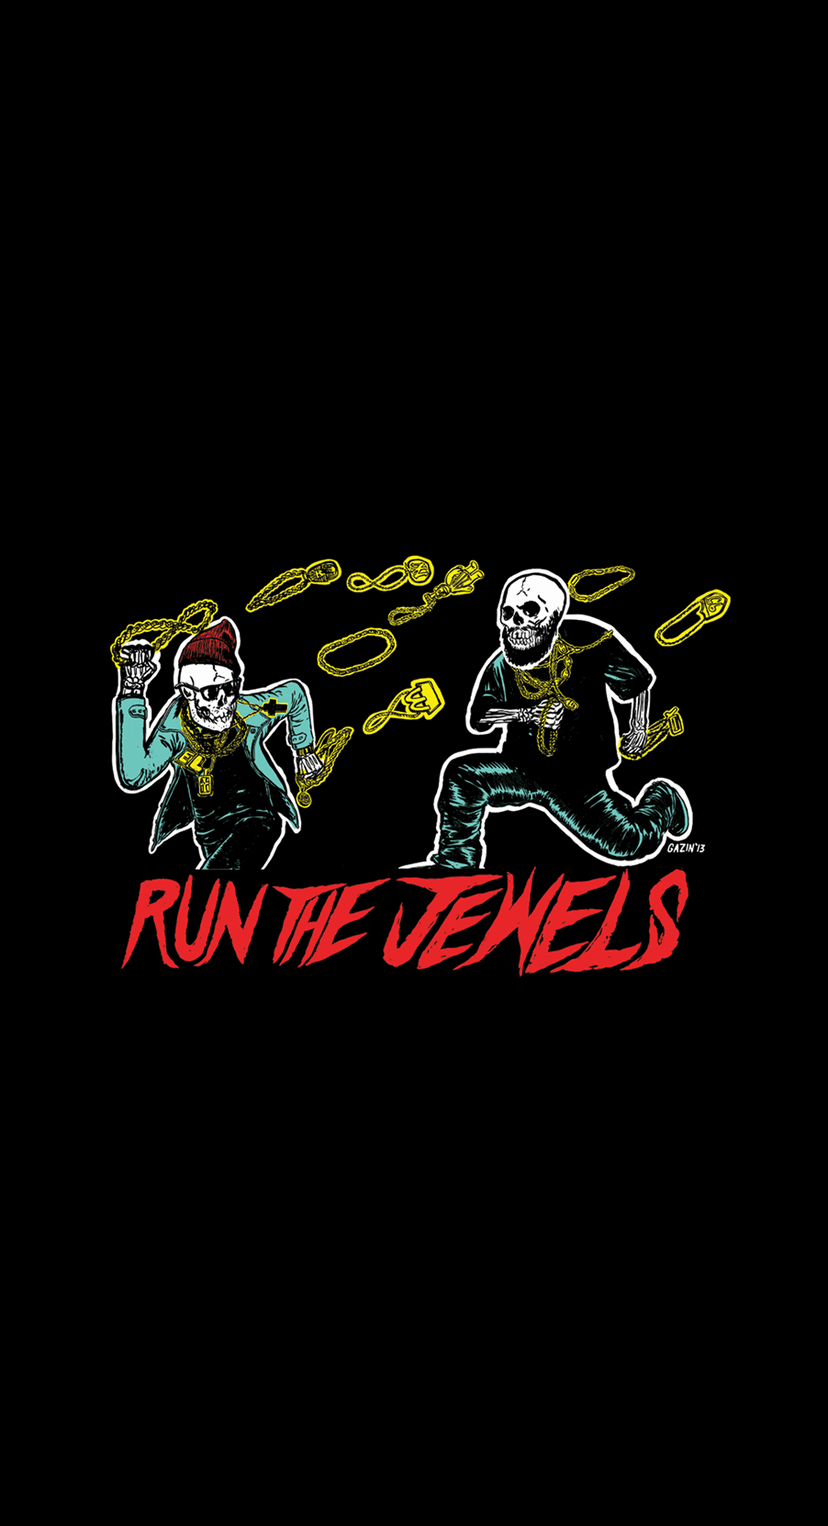 Free Rtj Desktop And Mobile Wallpaper Downloads Run The Jewels